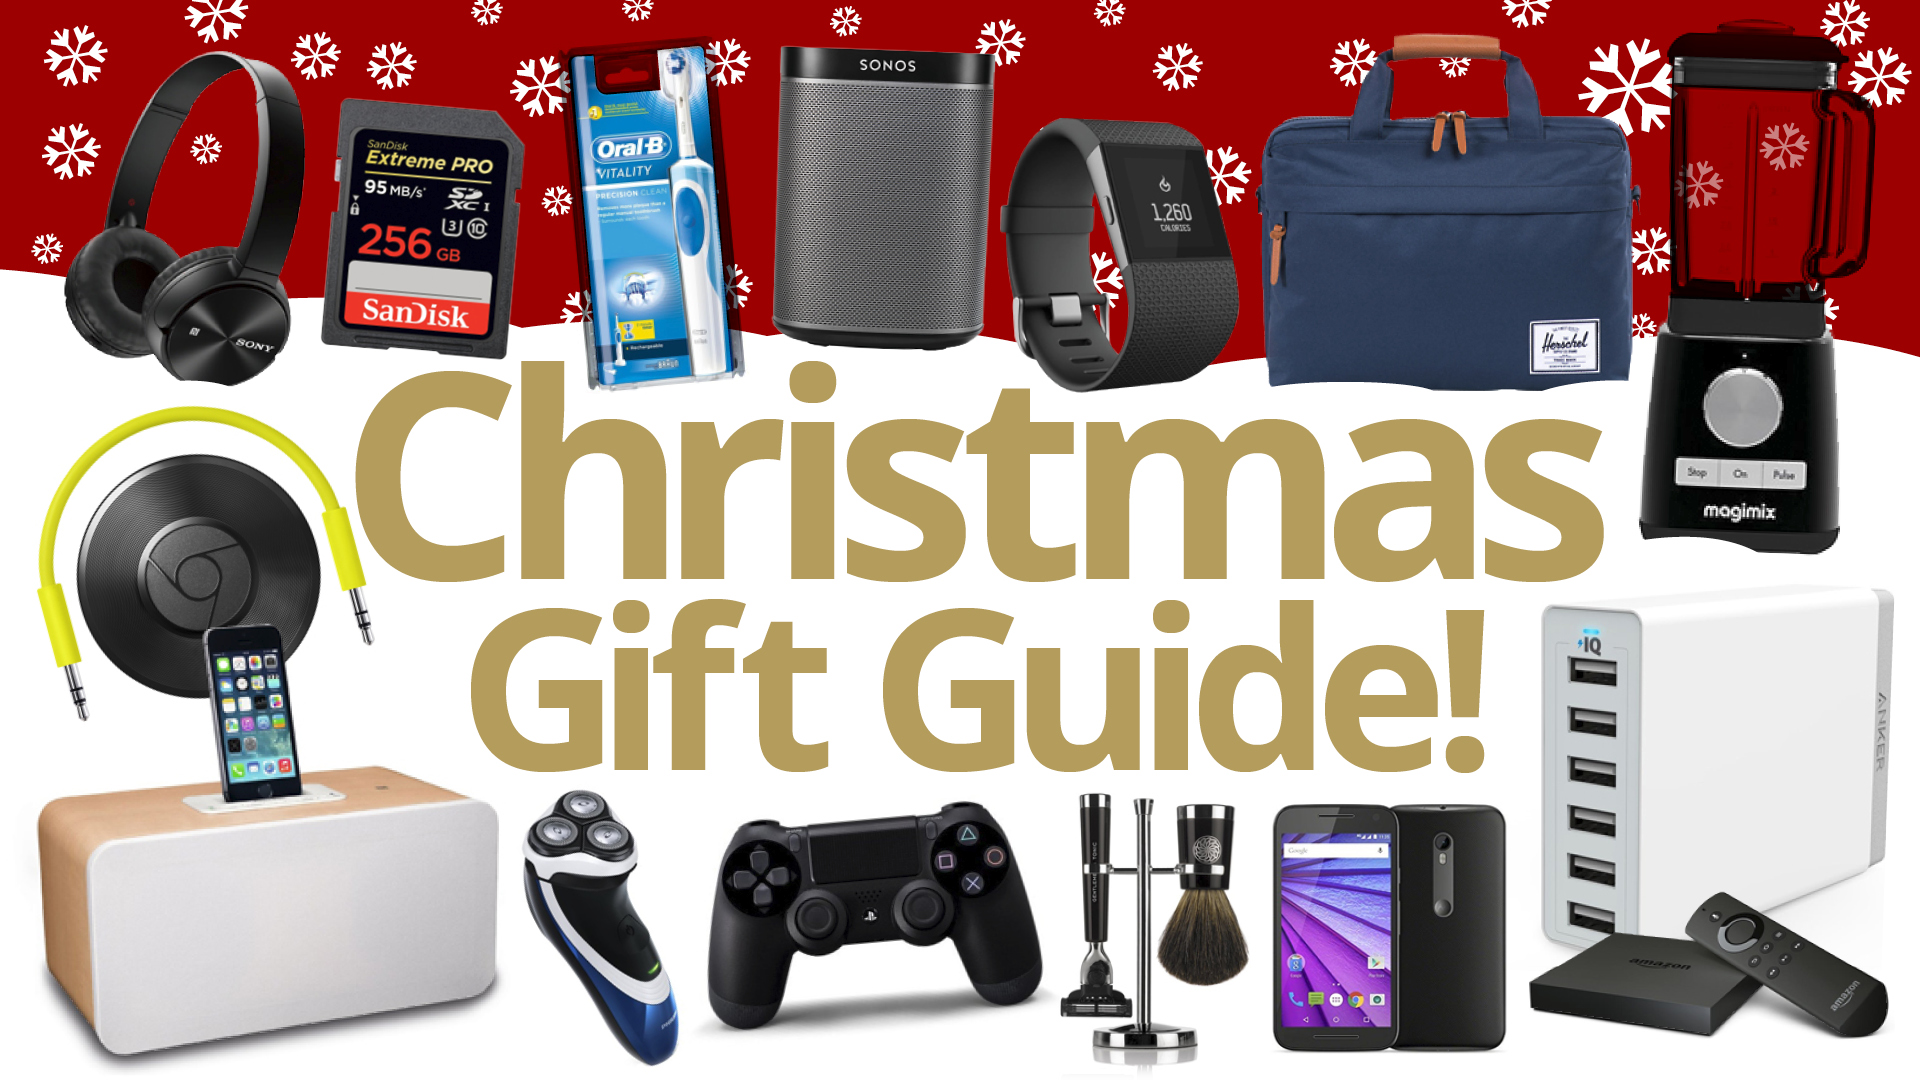 Christmas Gift Ideas: with deals inc. PS4, LG G4, TVs, games, iPhone ...